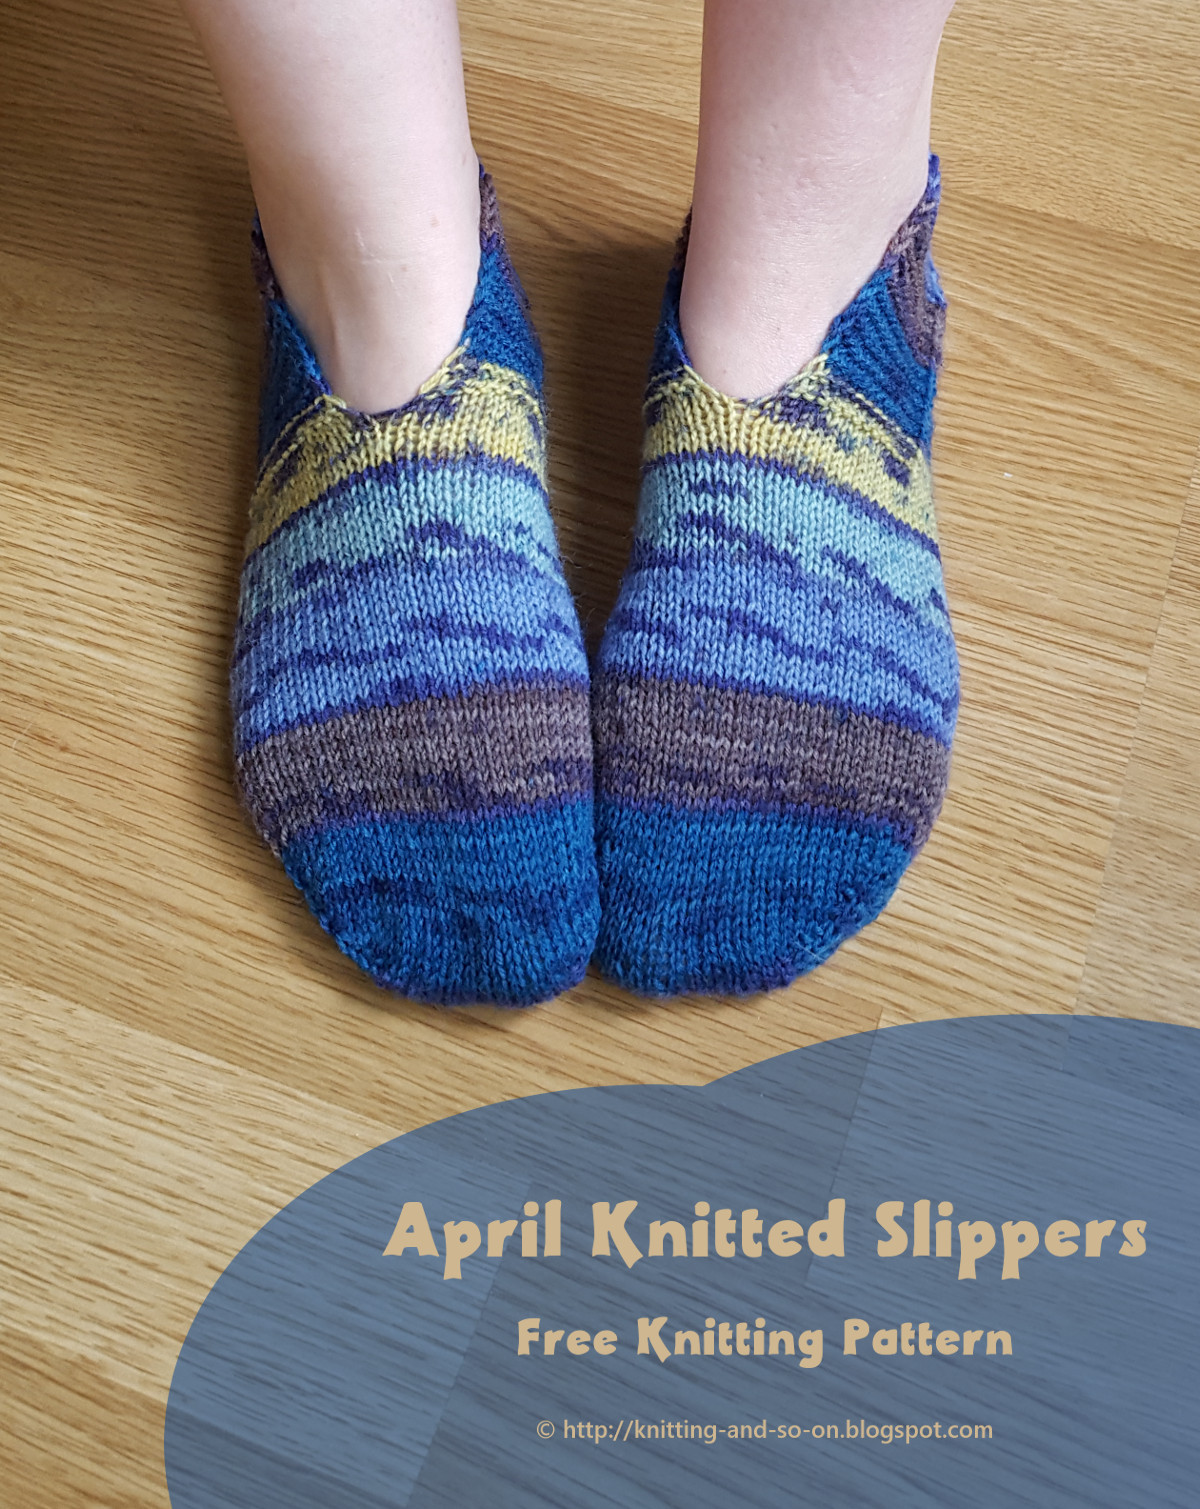 Knitted Slippers Beautiful Knitting and so On April Knitted Slippers Of New 42 Photos Knitted Slippers